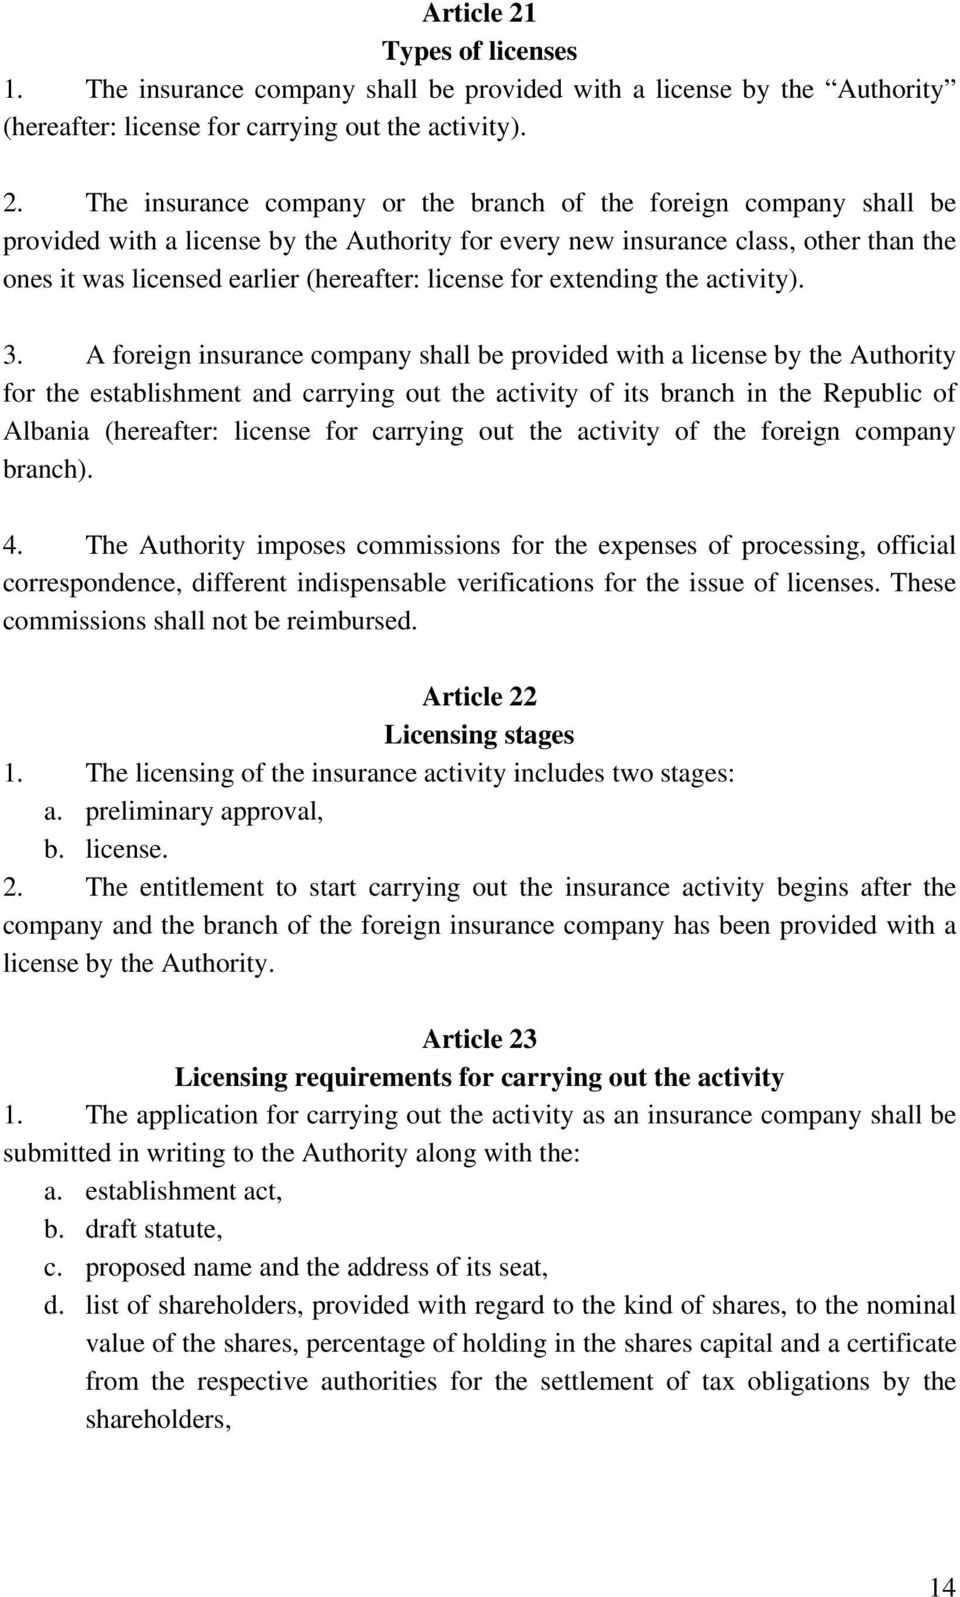 The insurance company or the branch of the foreign company shall be provided with a license by the Authority for every new insurance class, other than the ones it was licensed earlier (hereafter: